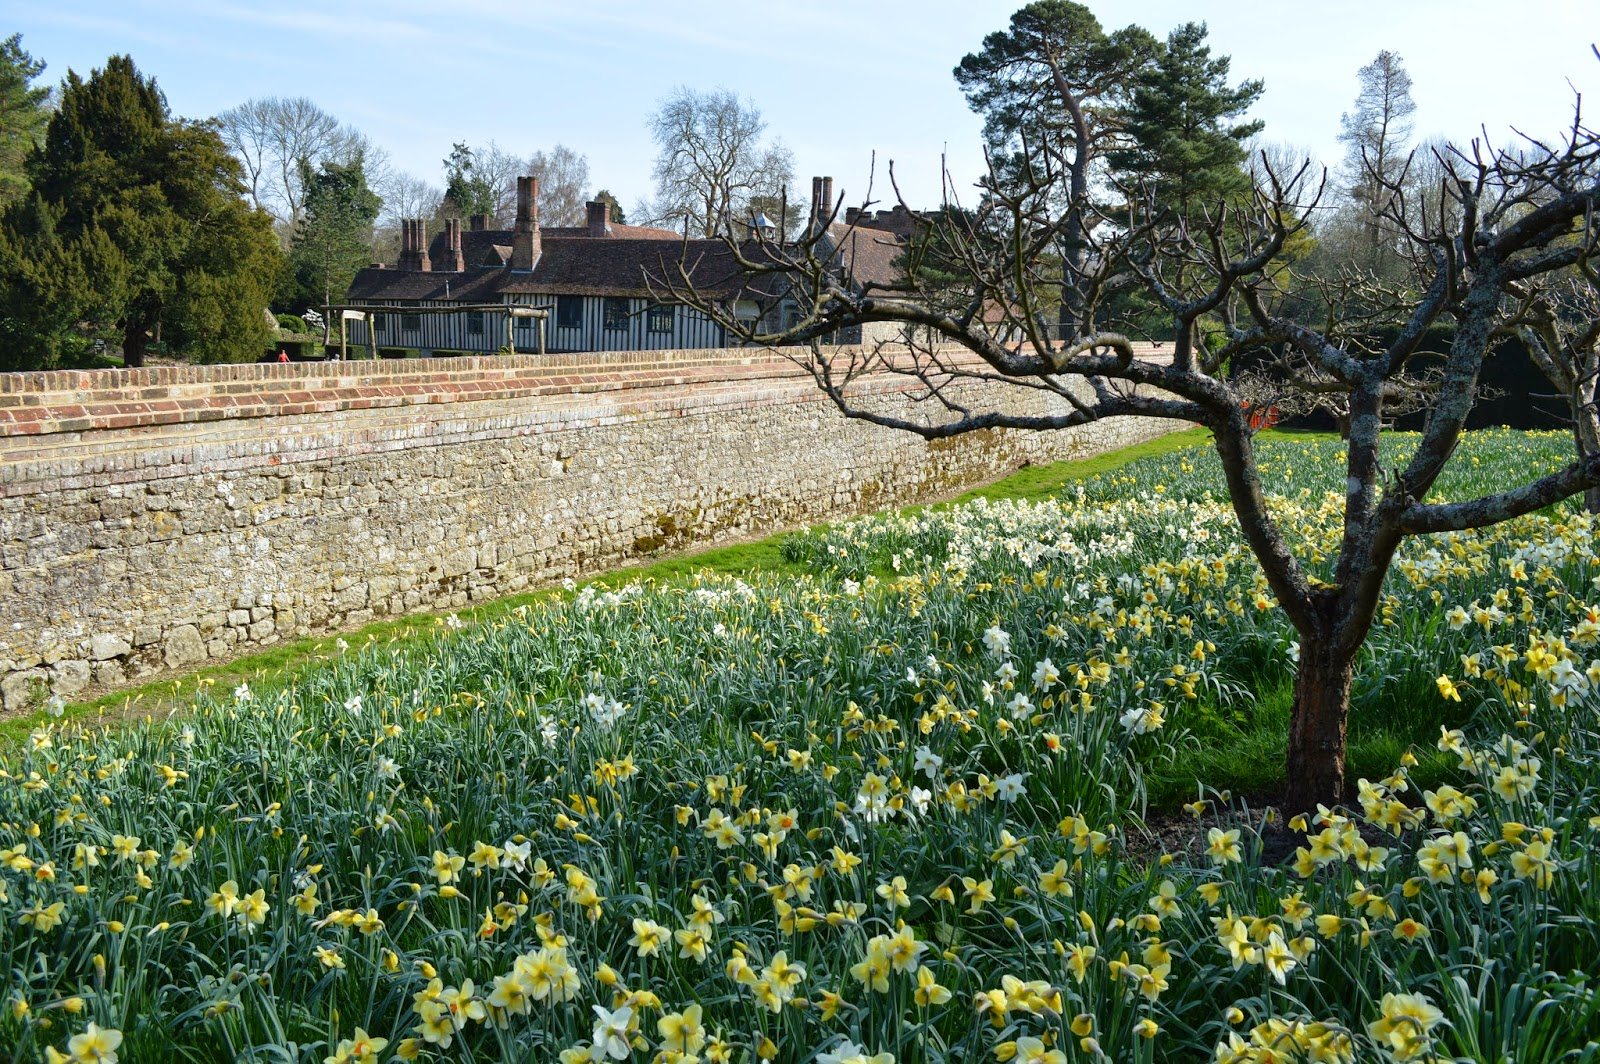 Medieval, Ightham Mote, Tudor, castle, Kent, visit, day trip, courtier, UK, history, historical, fortified, black and white beams, moat, Spring, meadow, grounds, garden, flowers,